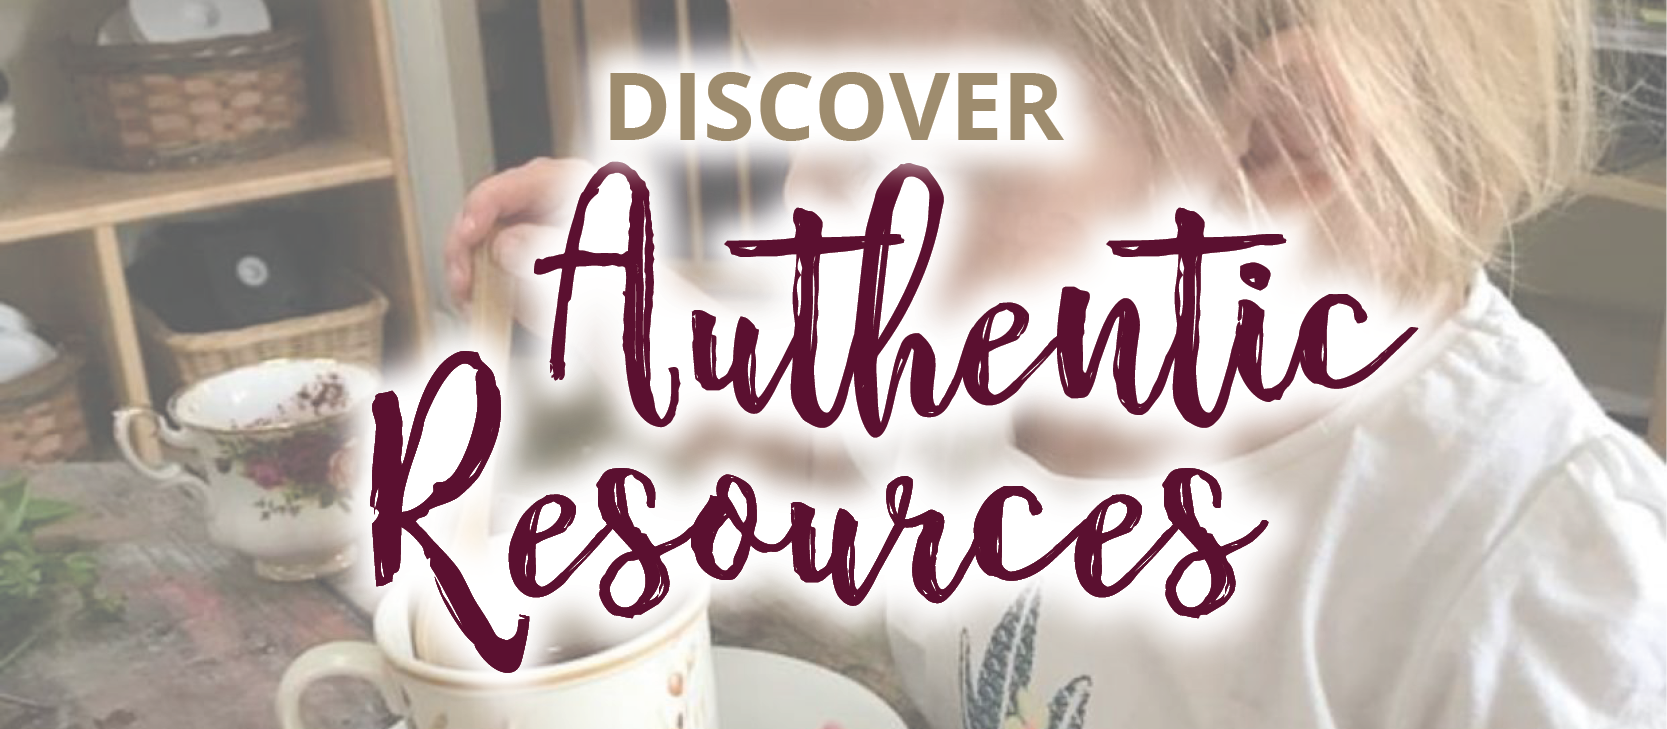 North Gloucestershire Network - Discover Authentic Resources - 23/04/2022